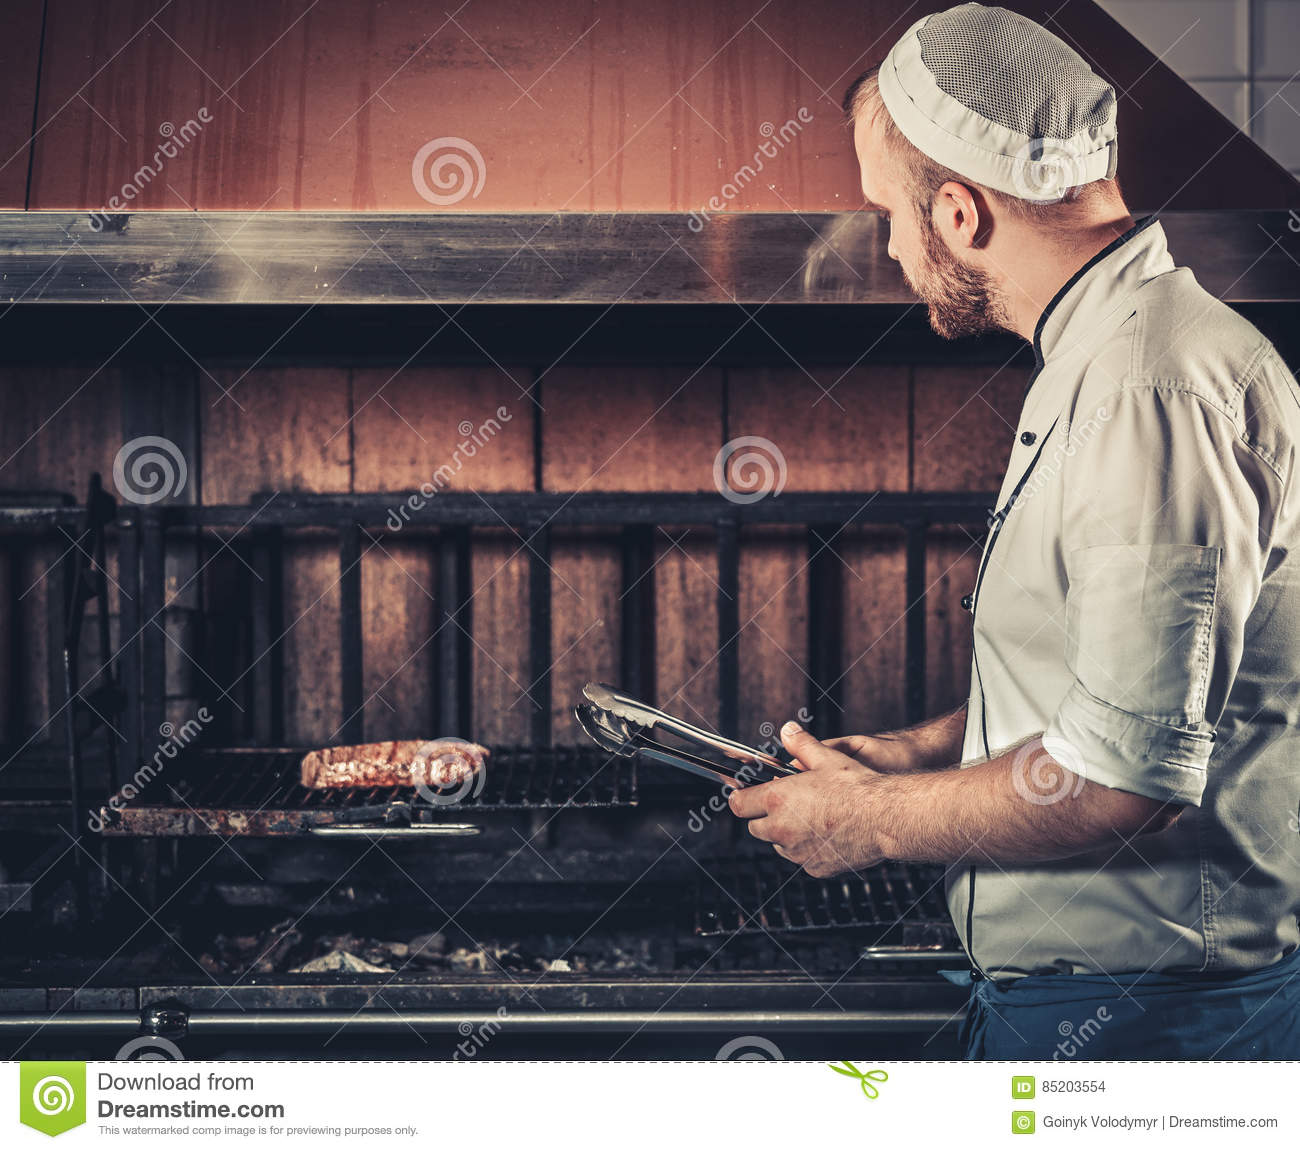 Blue apron restaurant - Busy Chef At Work In The Restaurant Kitchen Stock Images